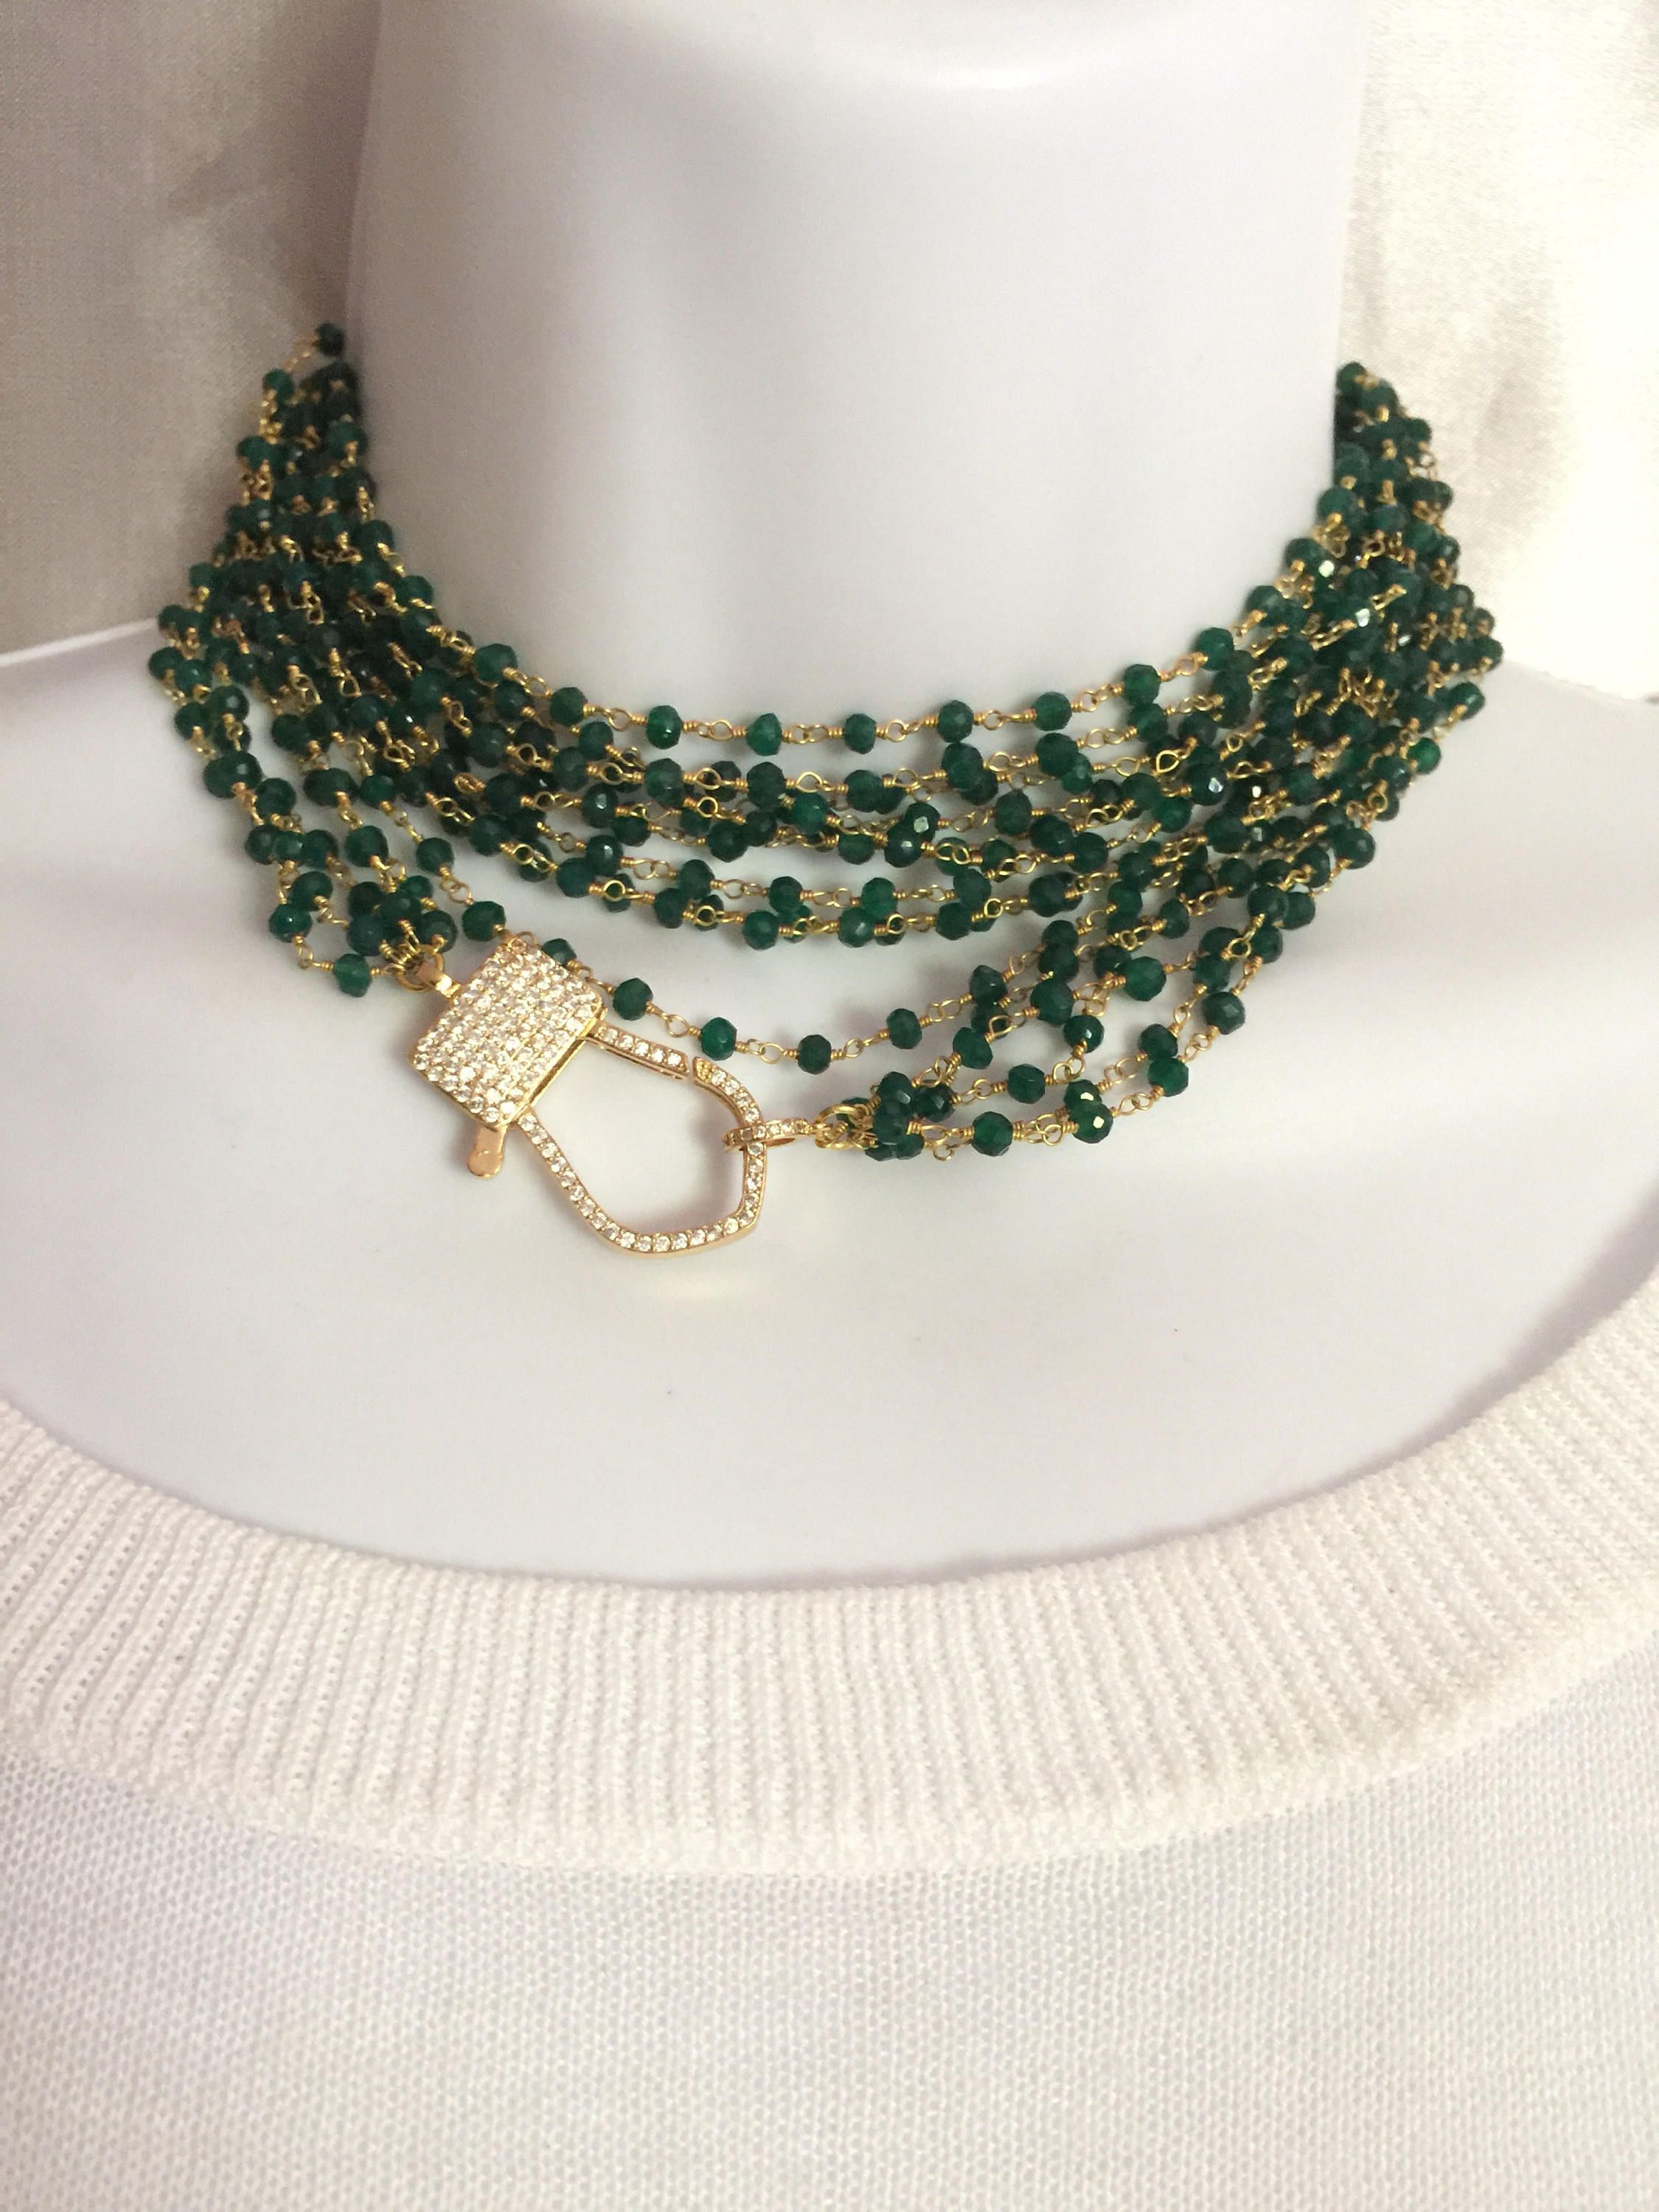 the of pin call beads mind glistening glitter green to onyx necklace